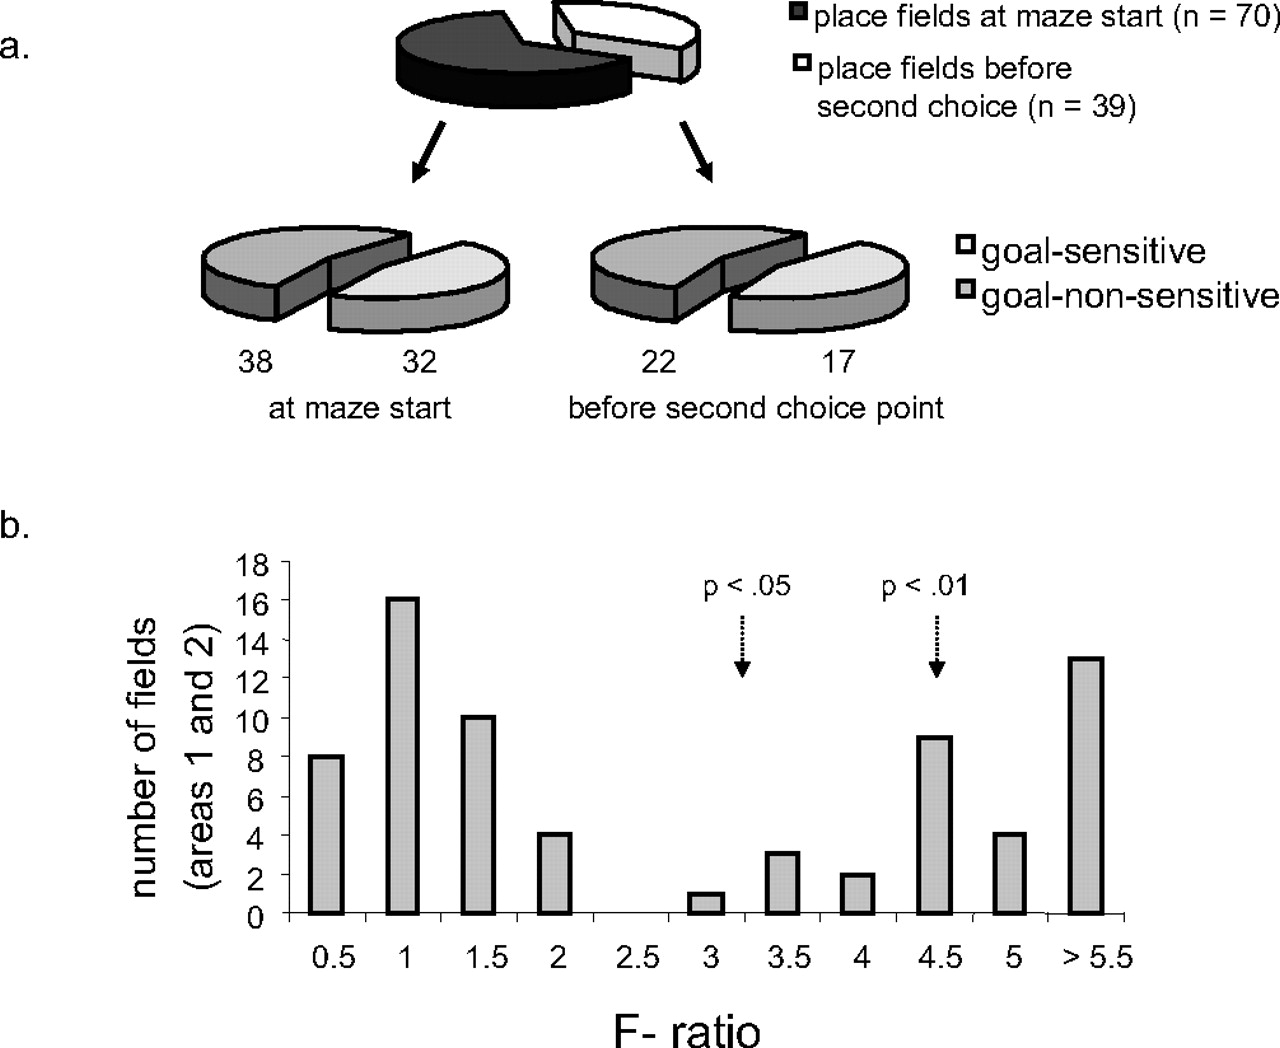 Hippocampal Ca1 Place Cells Encode Intended Destination On A Maze With Multiple Choice Points